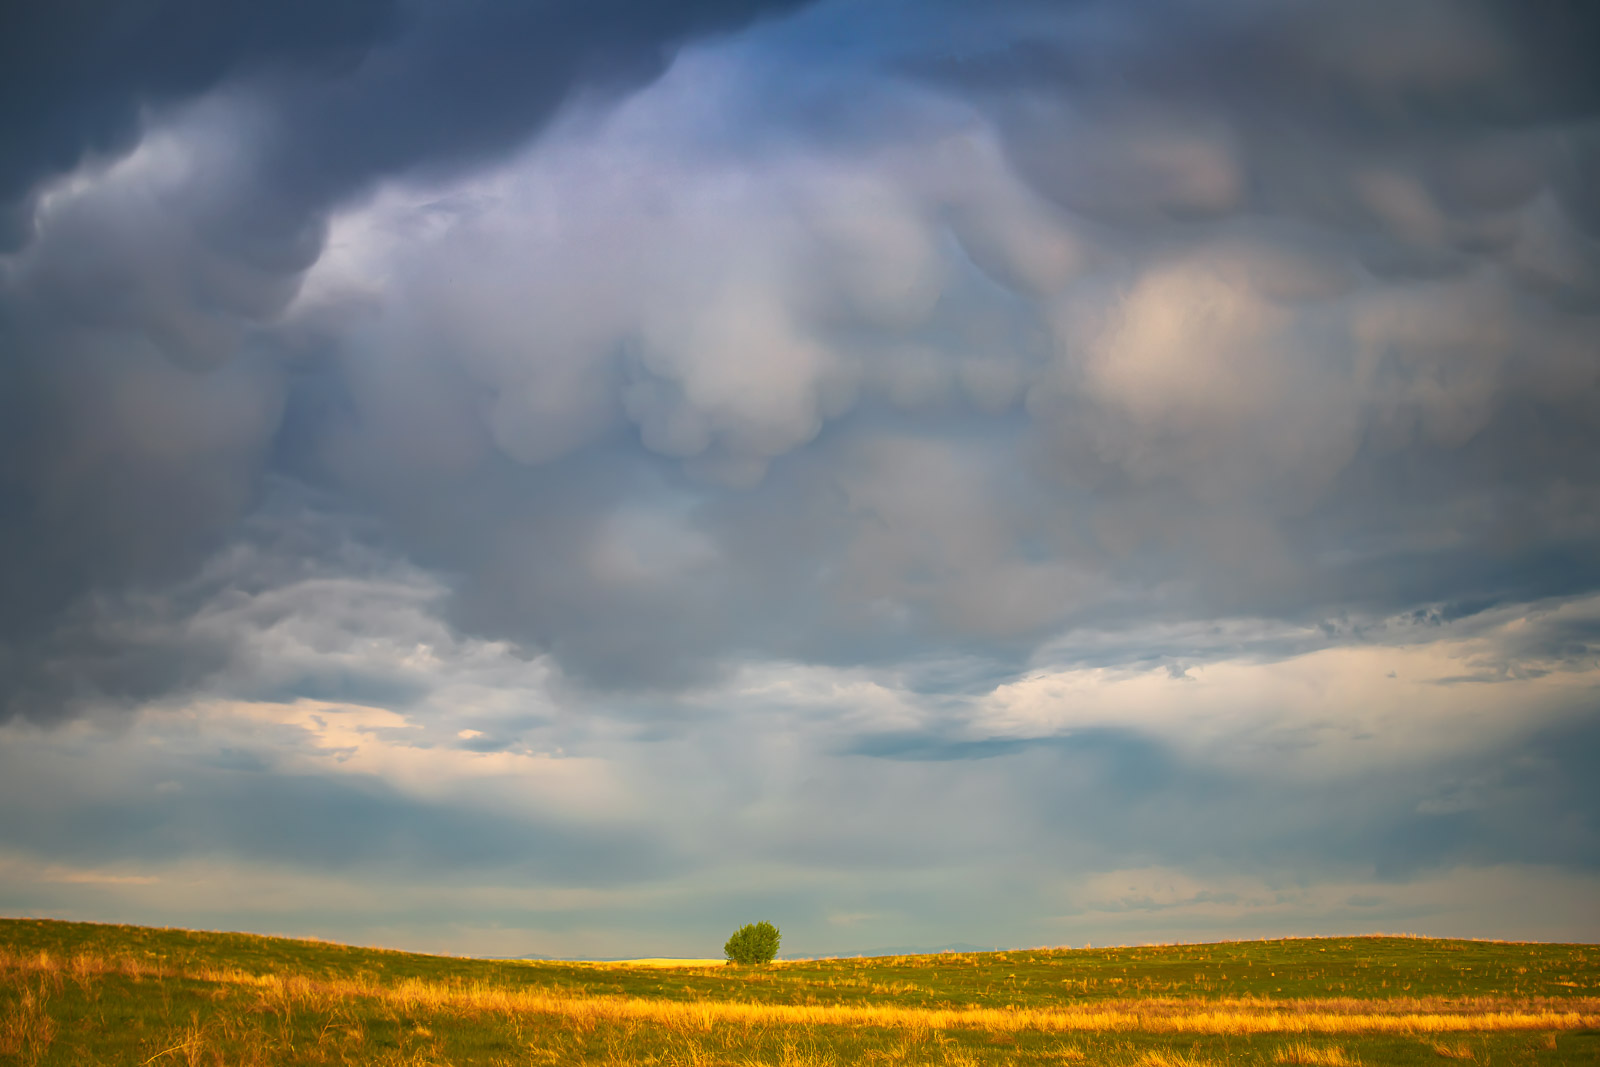 A lone tree on the Prairie under a brewing thunderstorm captured just before the skies opened up in rain, wind and sleet.